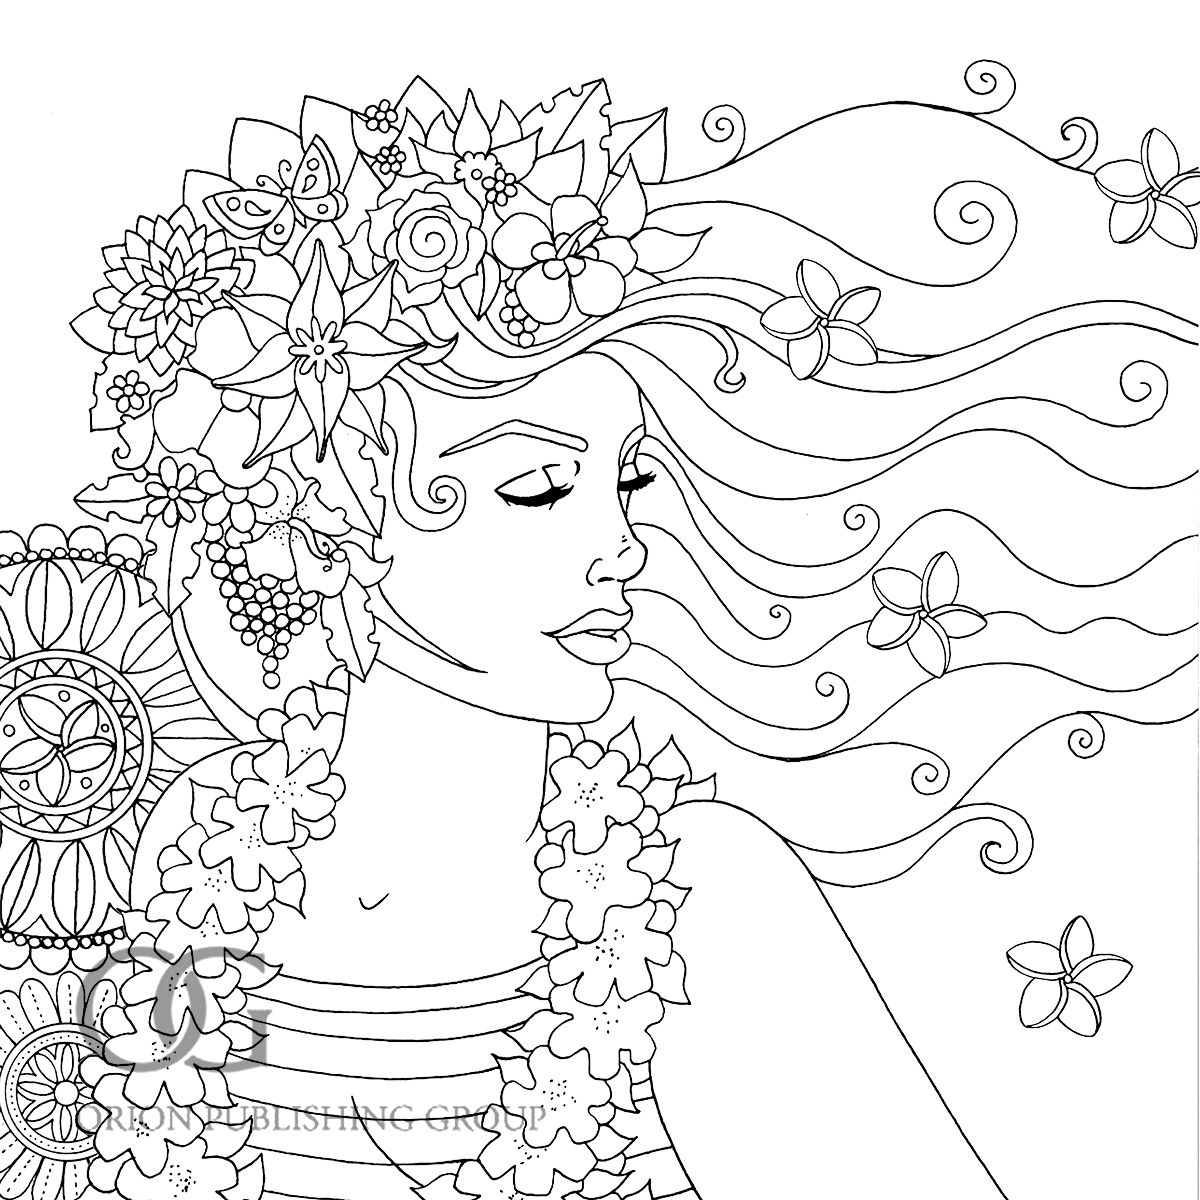 Pin By Beth Conroy On Color Coloring Pages For Girls Coloring